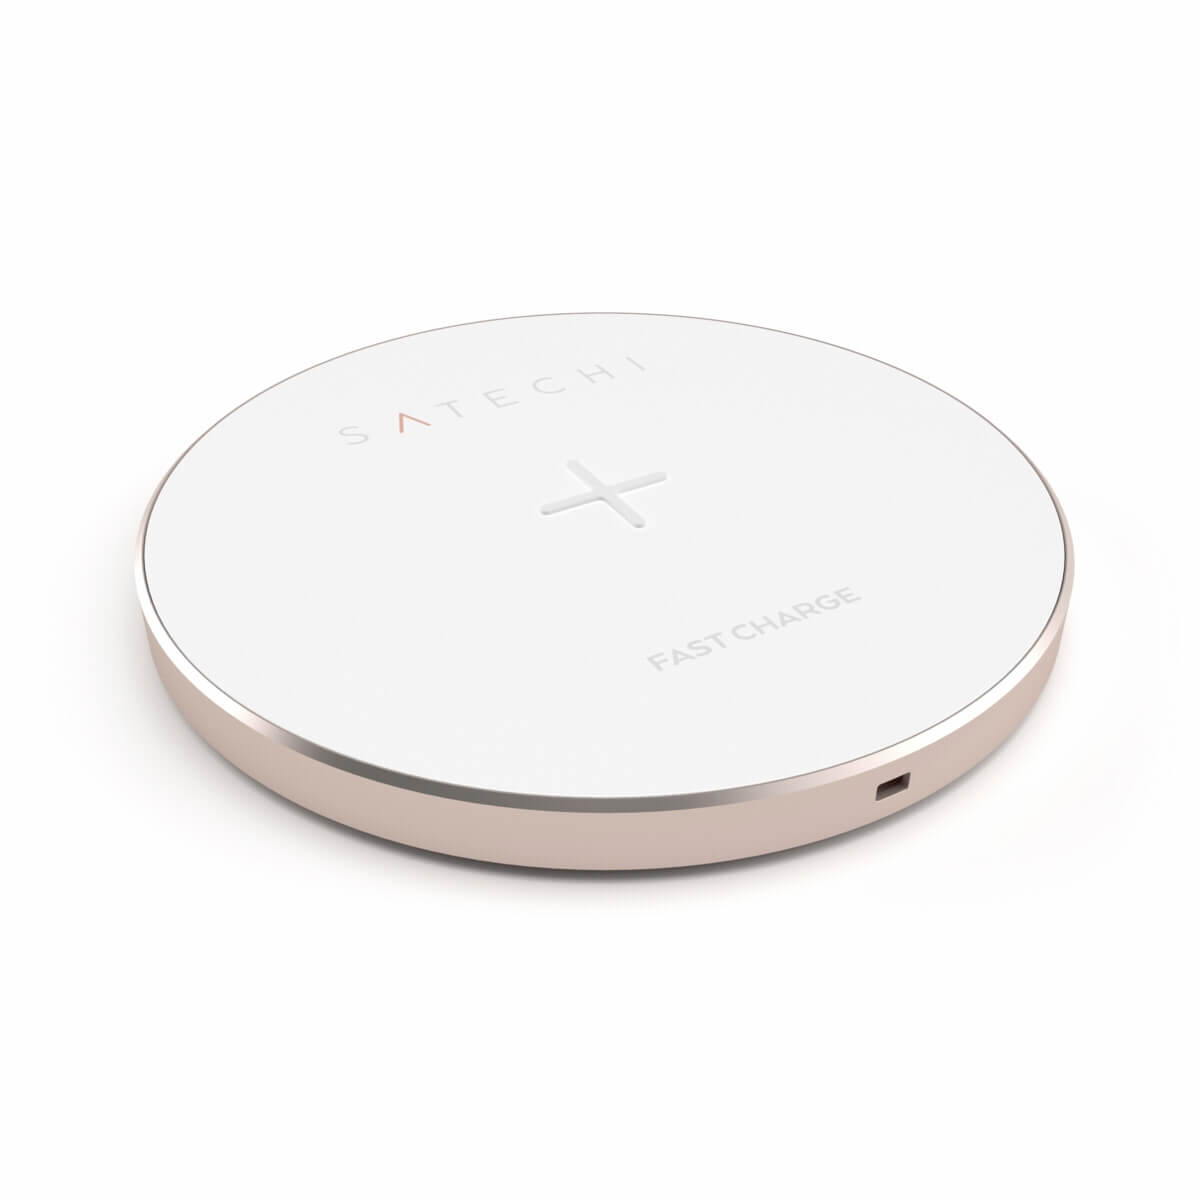 Satechi Wireless Charging Pad Fast Charge (rose gold)